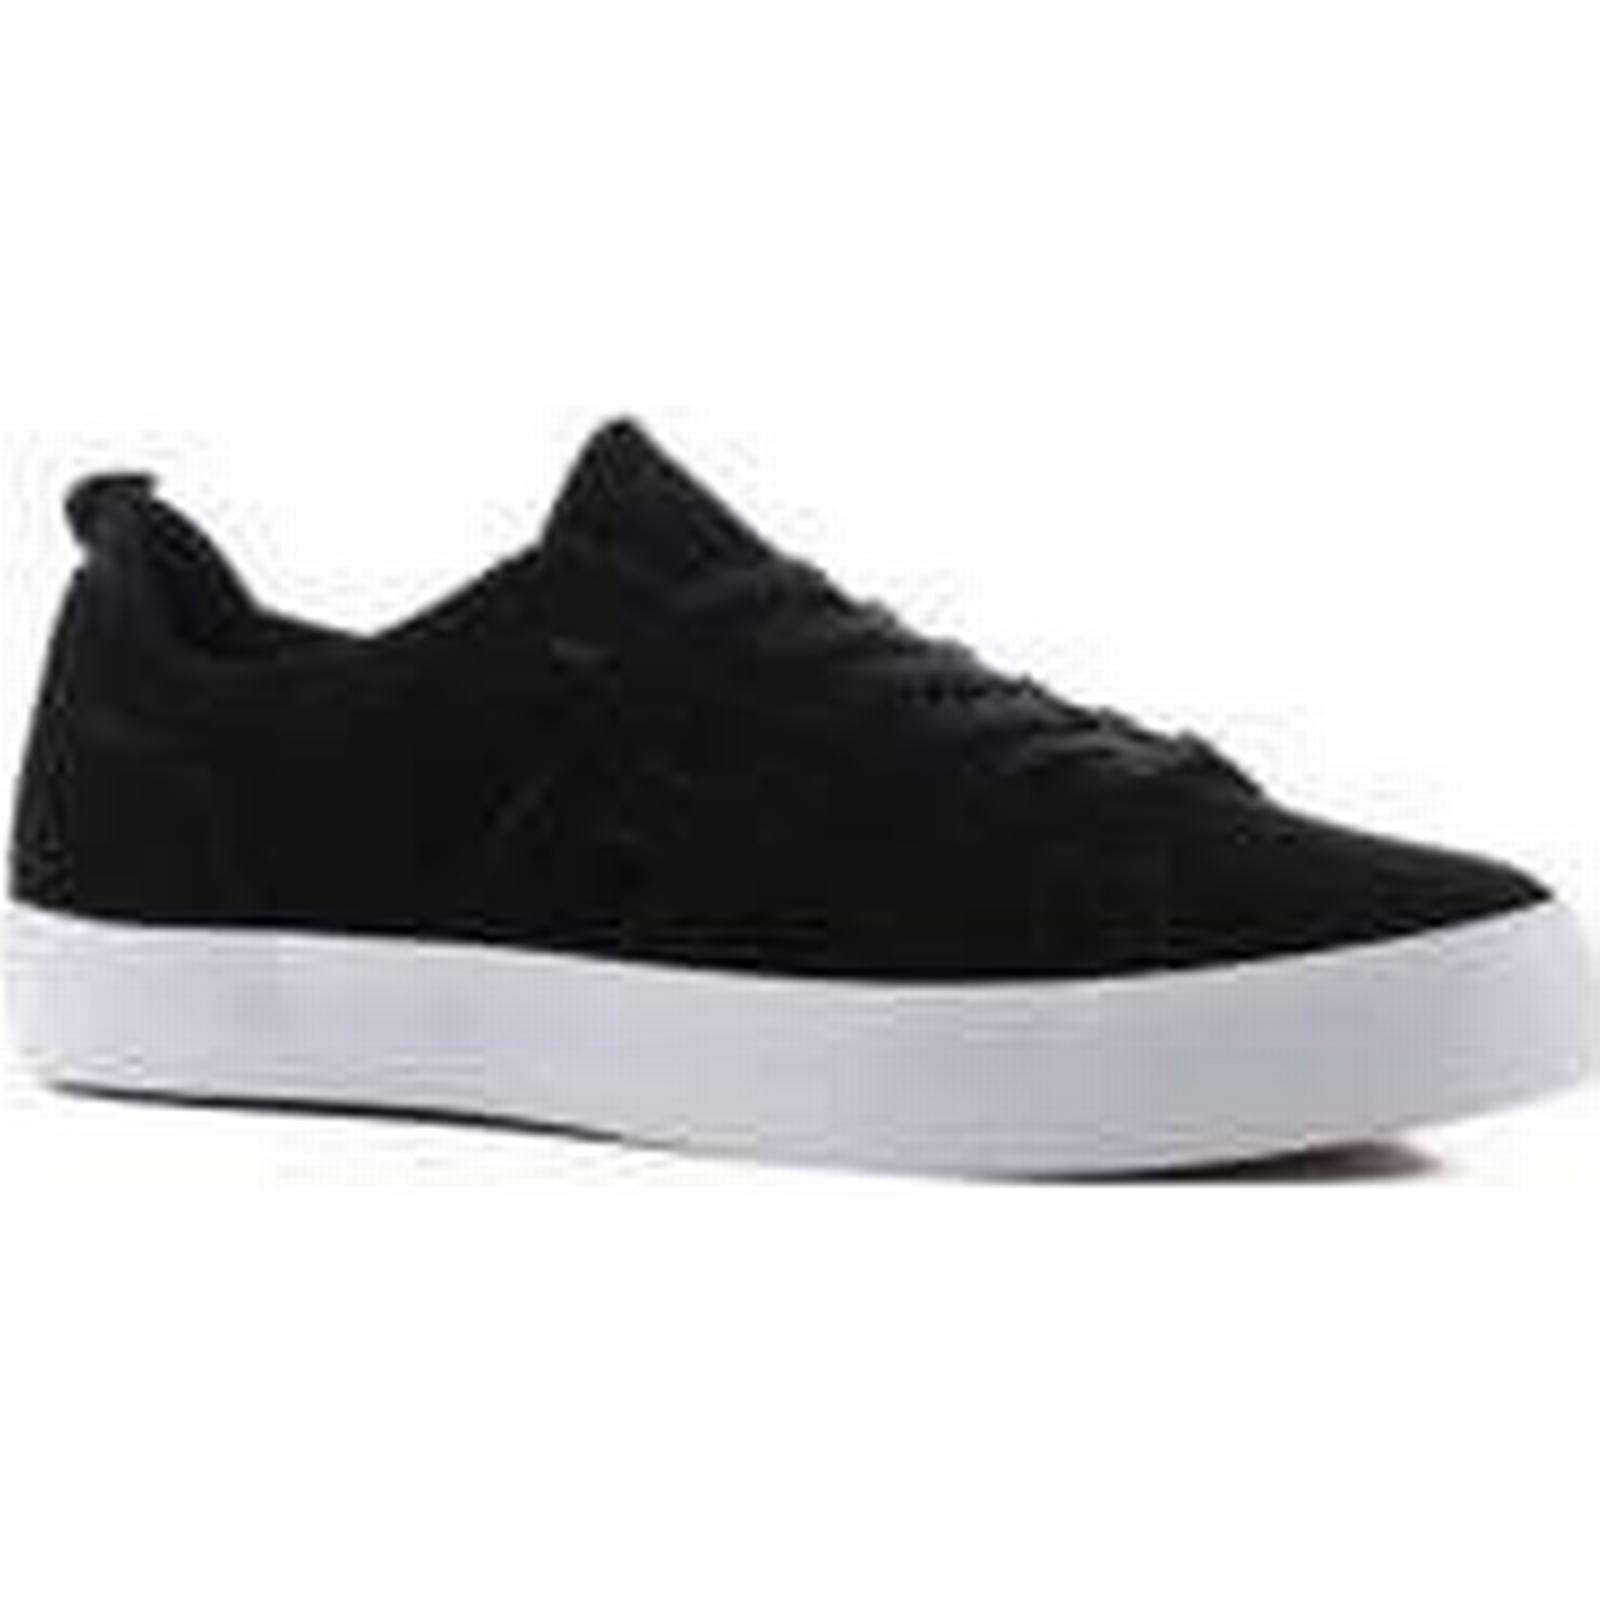 HUF Clive Skate Shoes Shoes Shoes black d77b64